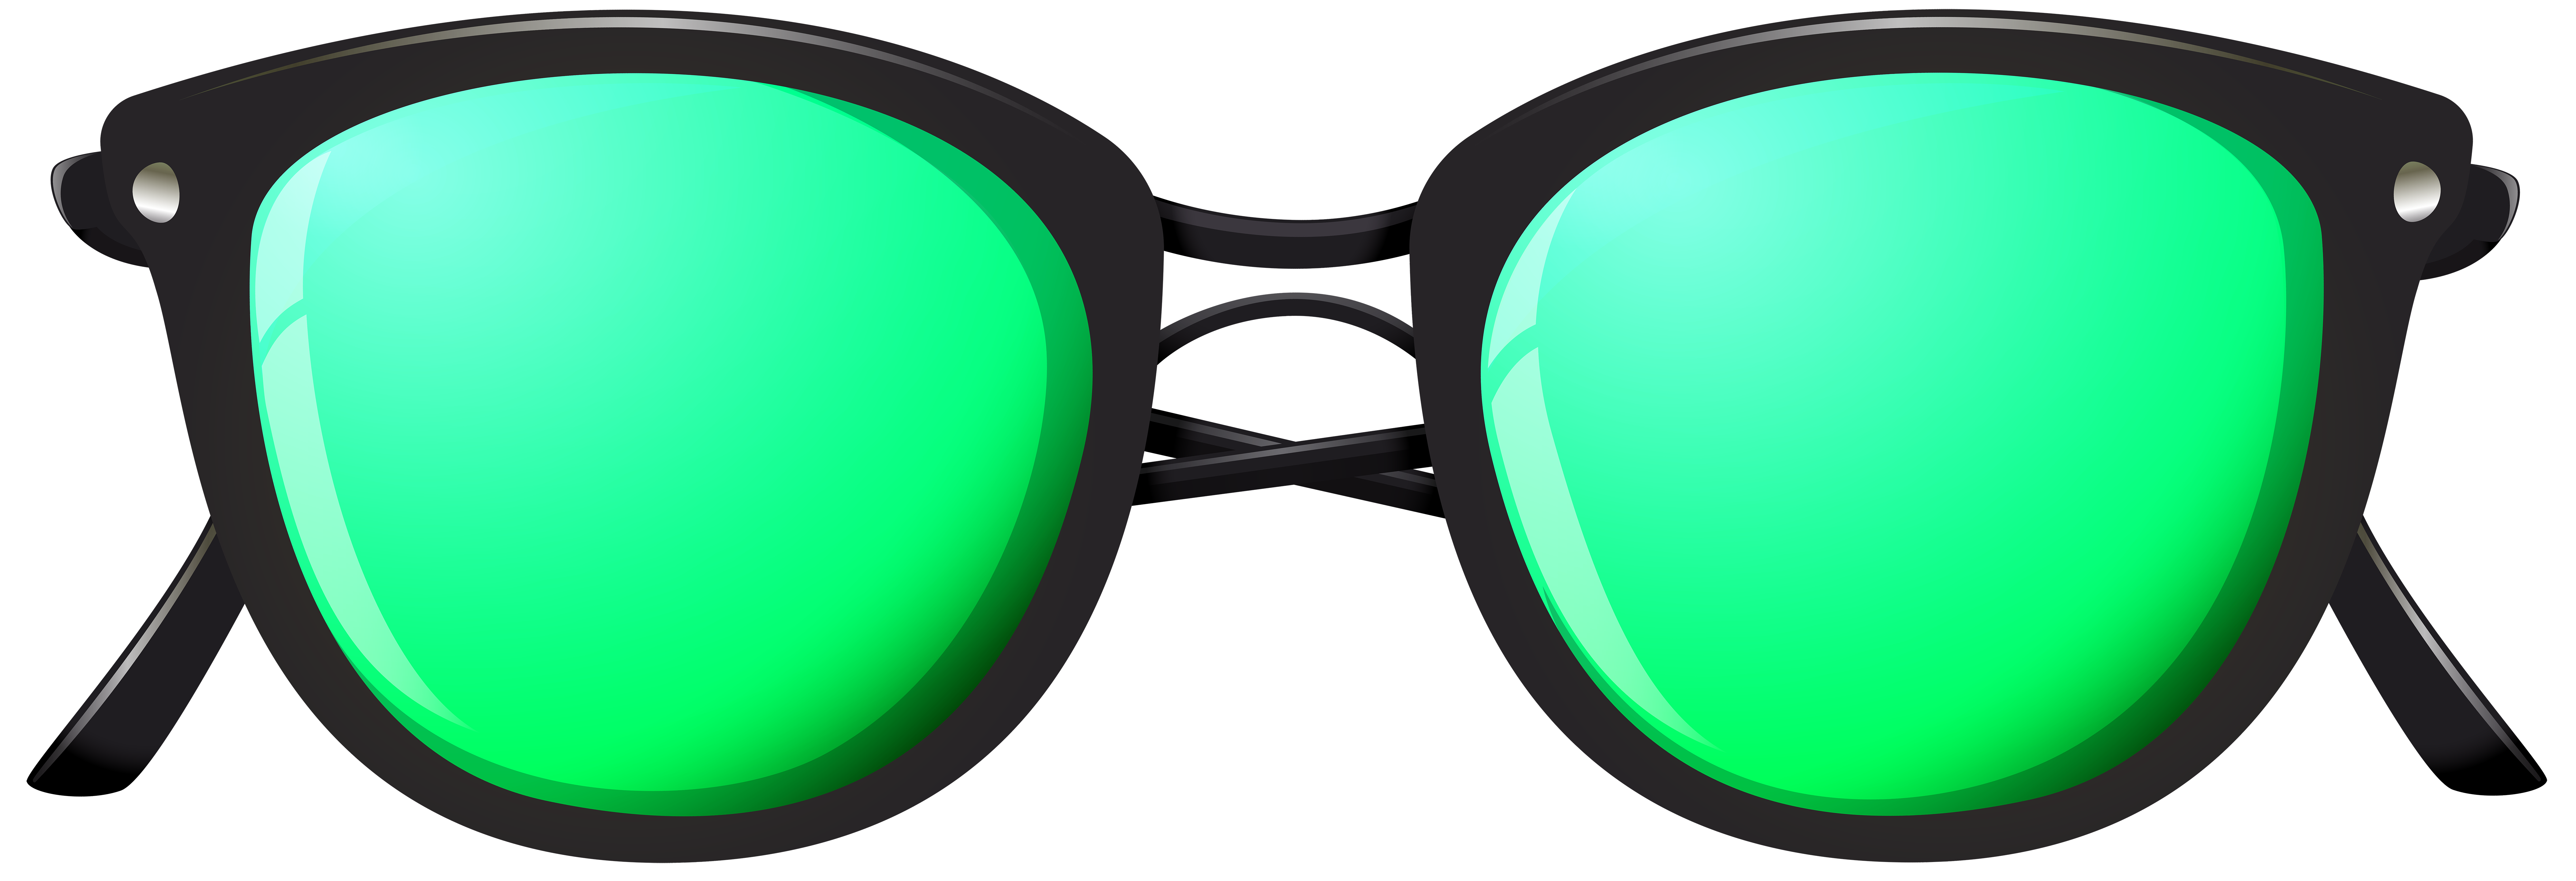 Green sun glasses clipart picture royalty free stock Sunglasses PNG Clip Art Image | Gallery Yopriceville - High-Quality ... picture royalty free stock